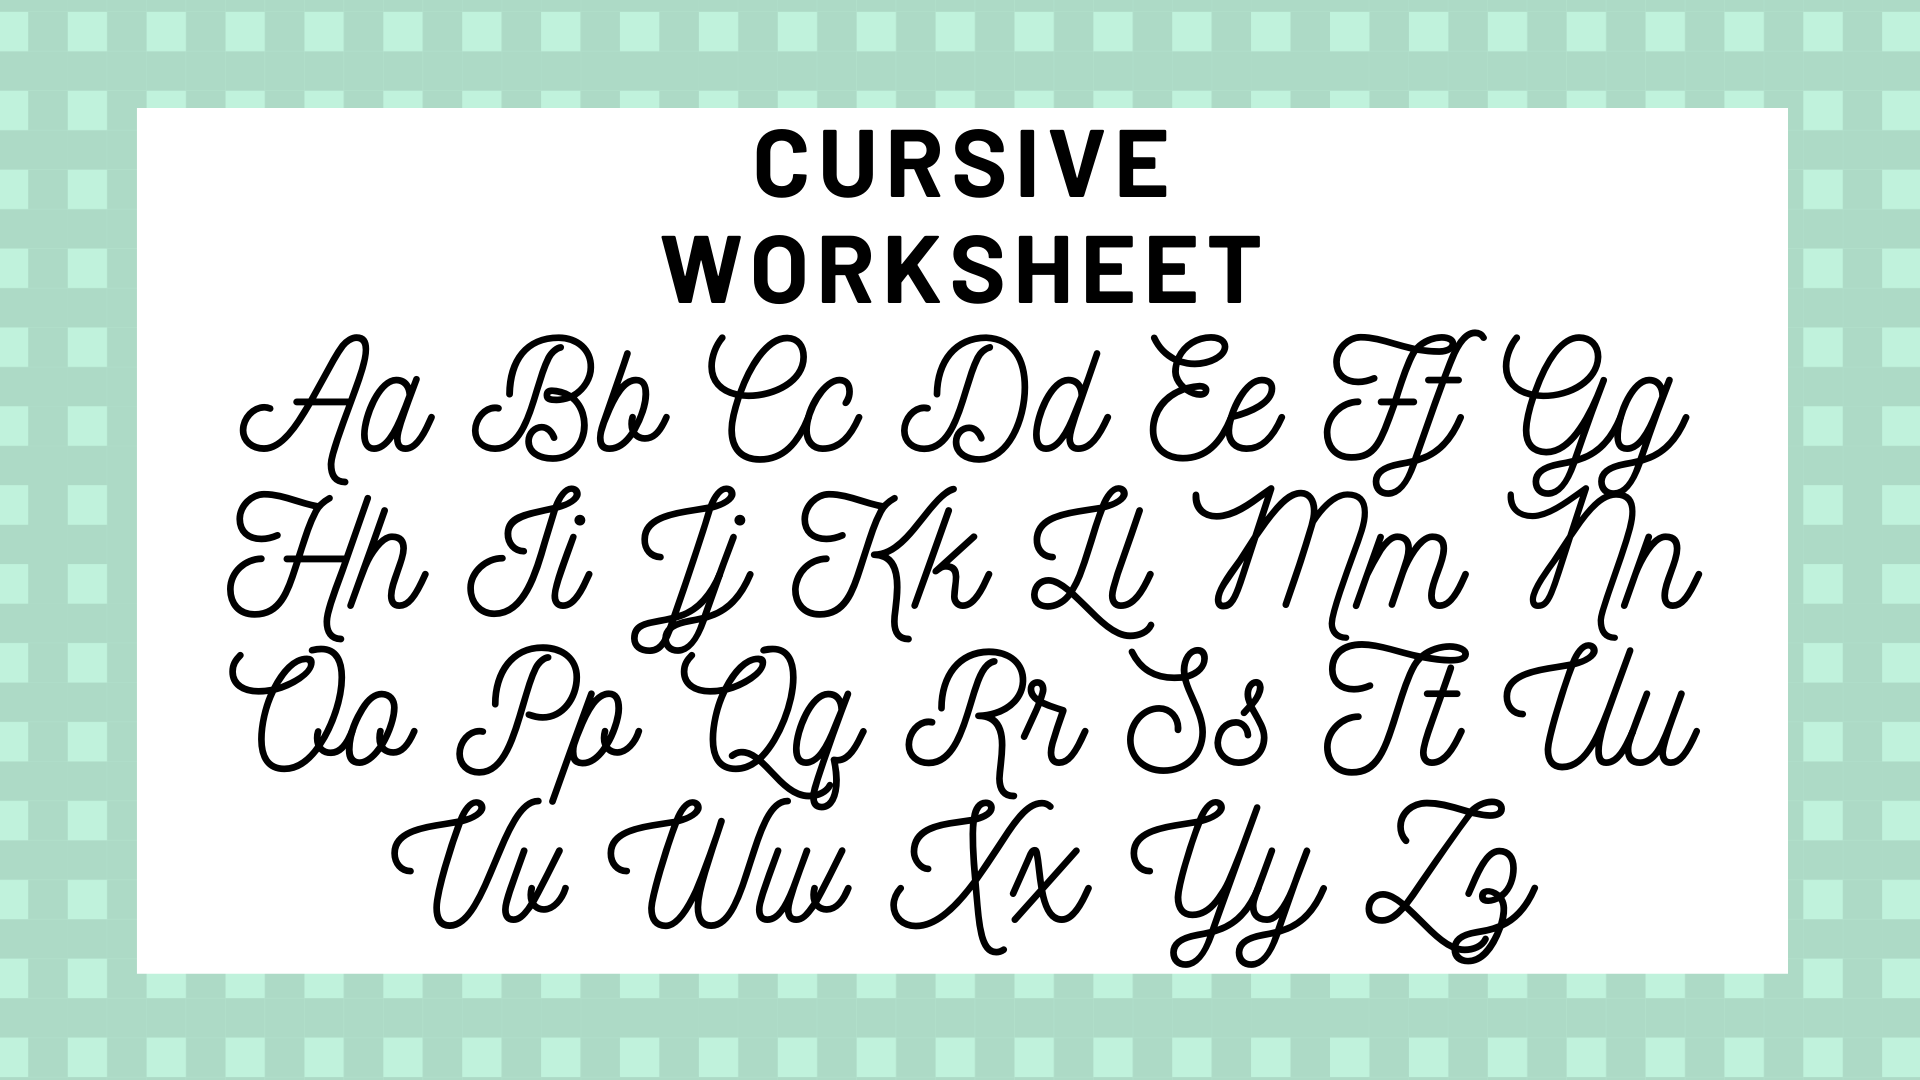 Cursive Alphabet Your Guide To Cursive Writing Science Trends Watch video tutorial, practice exercises, download free guidesheets. cursive alphabet your guide to cursive